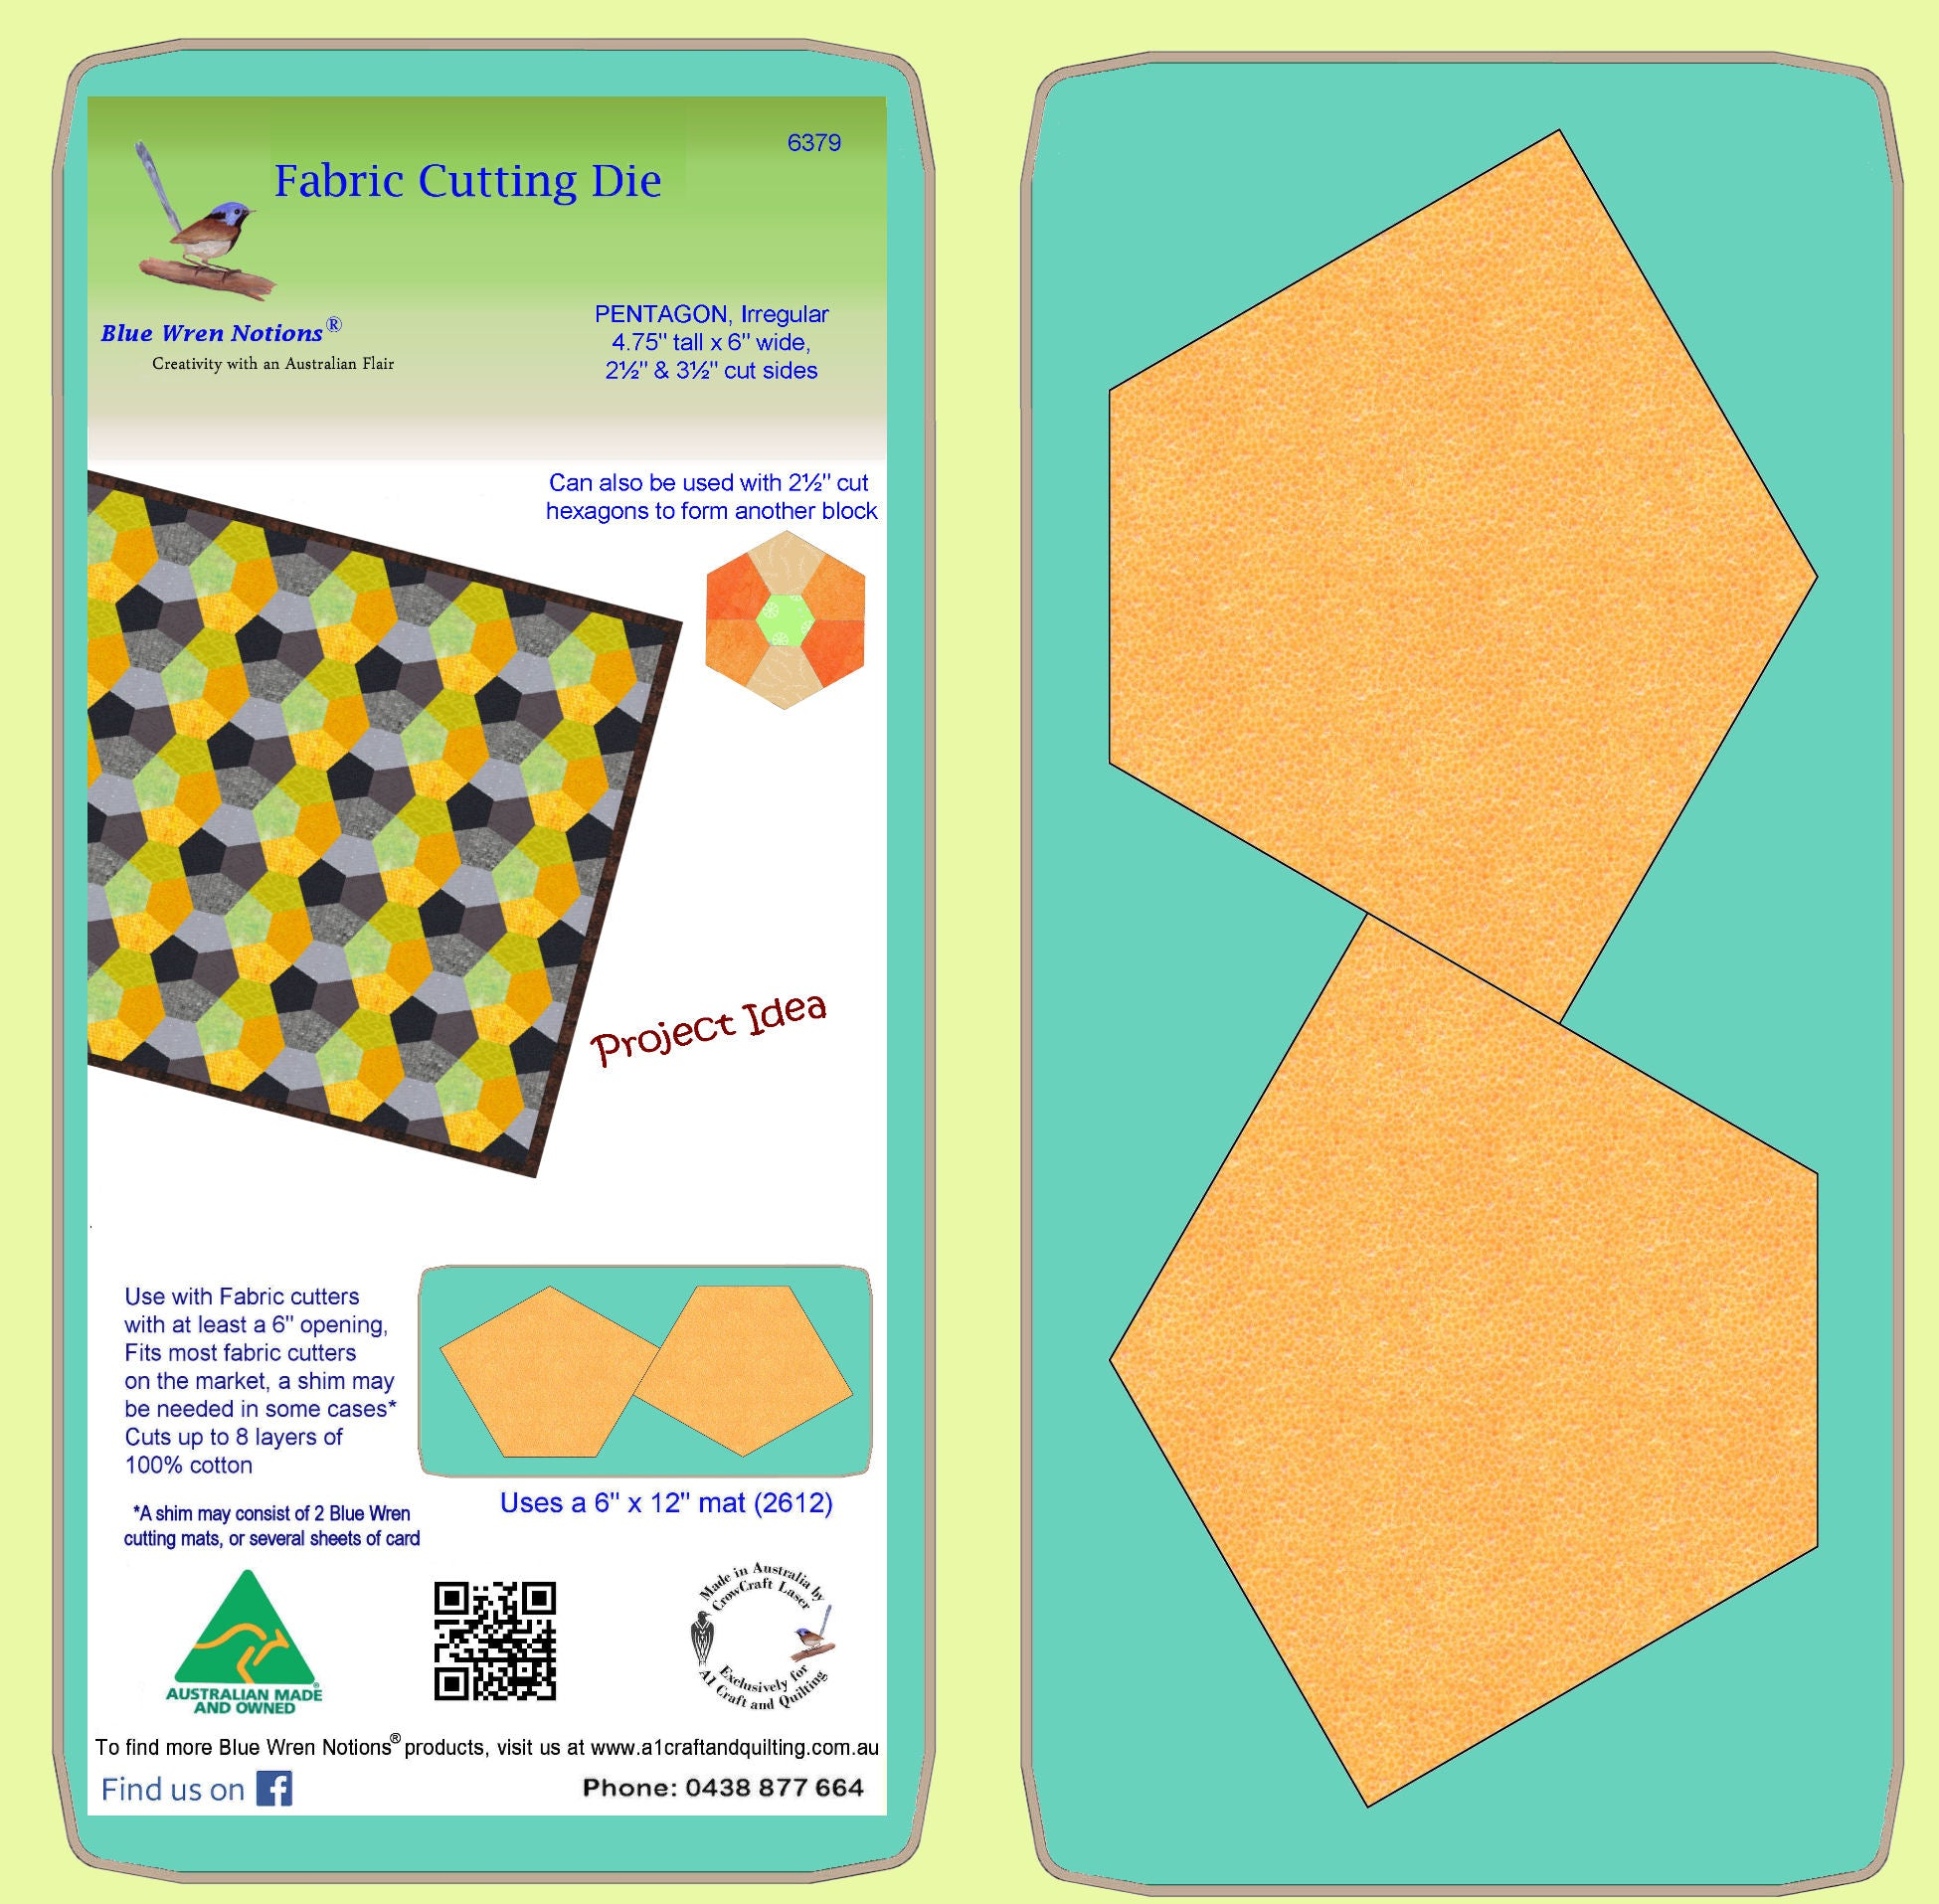 "Pentagons, Irregular 4¾"" Tall, 6"" wide, 2½ and 3½"" cut sides 6379 - Includes cutting Mat"